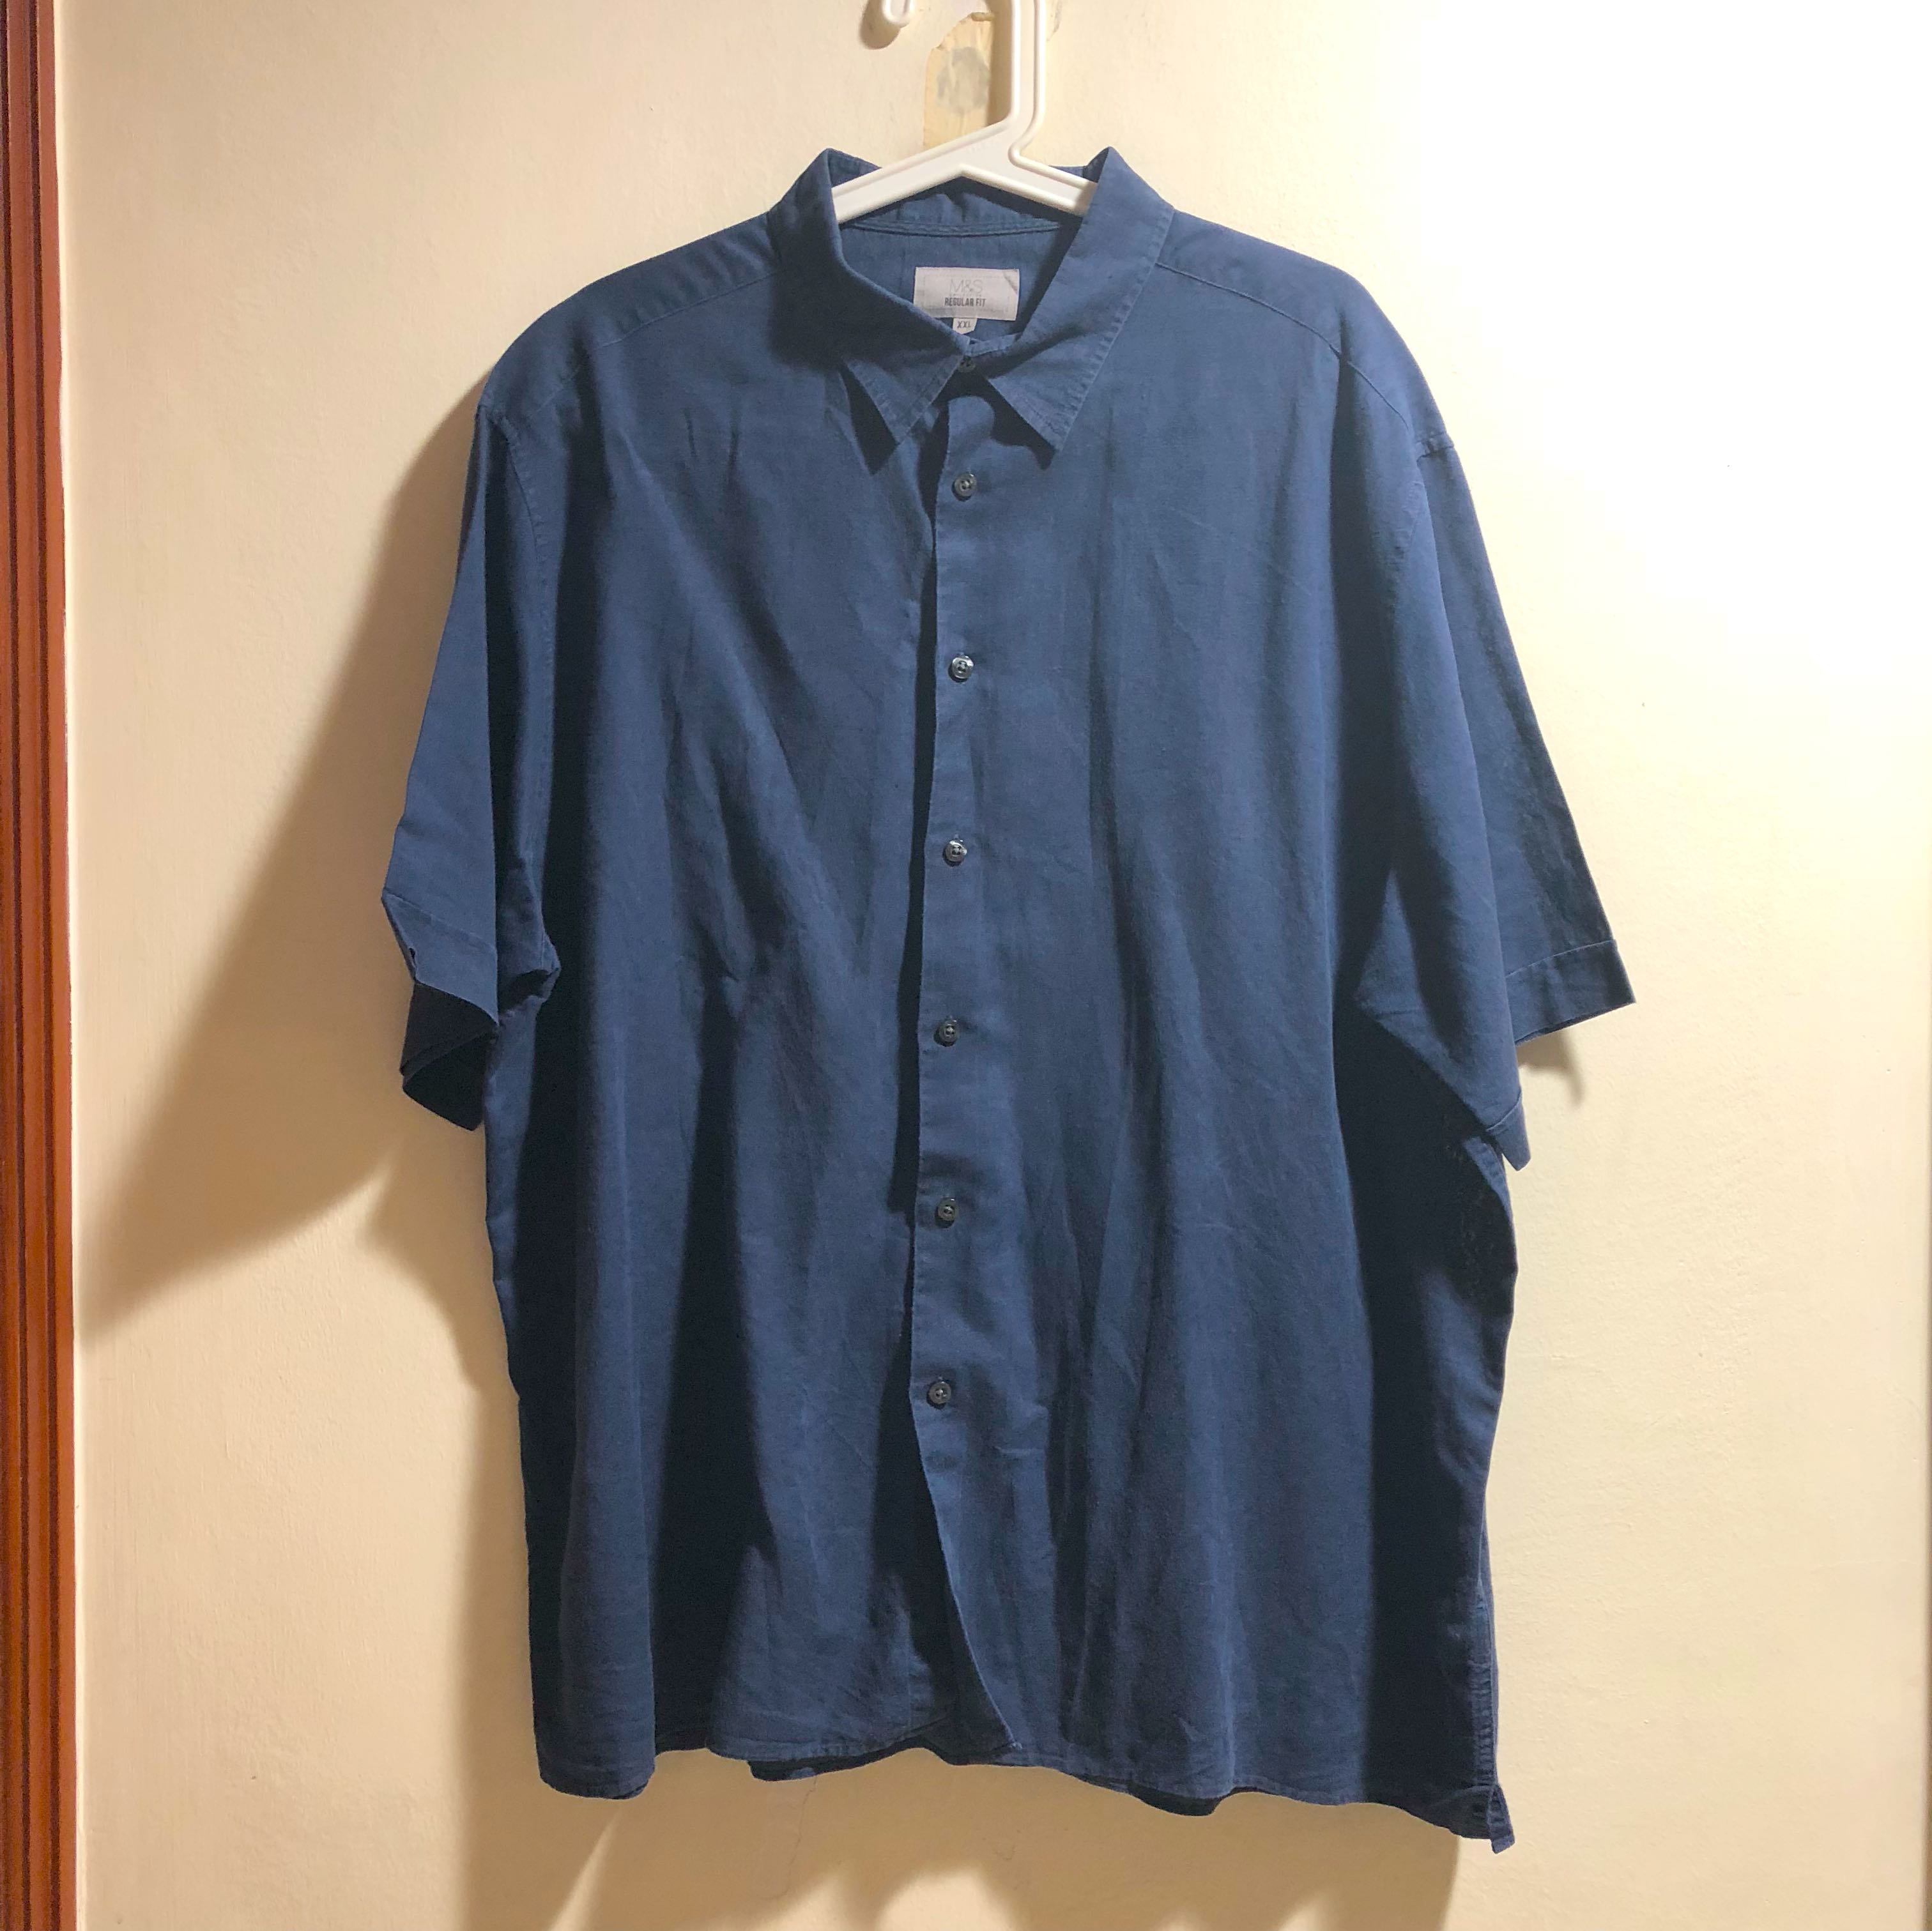 f75bb9ab8 Marks & Spencer Linen shirt in XL, Men's Fashion, Clothes, Tops on ...